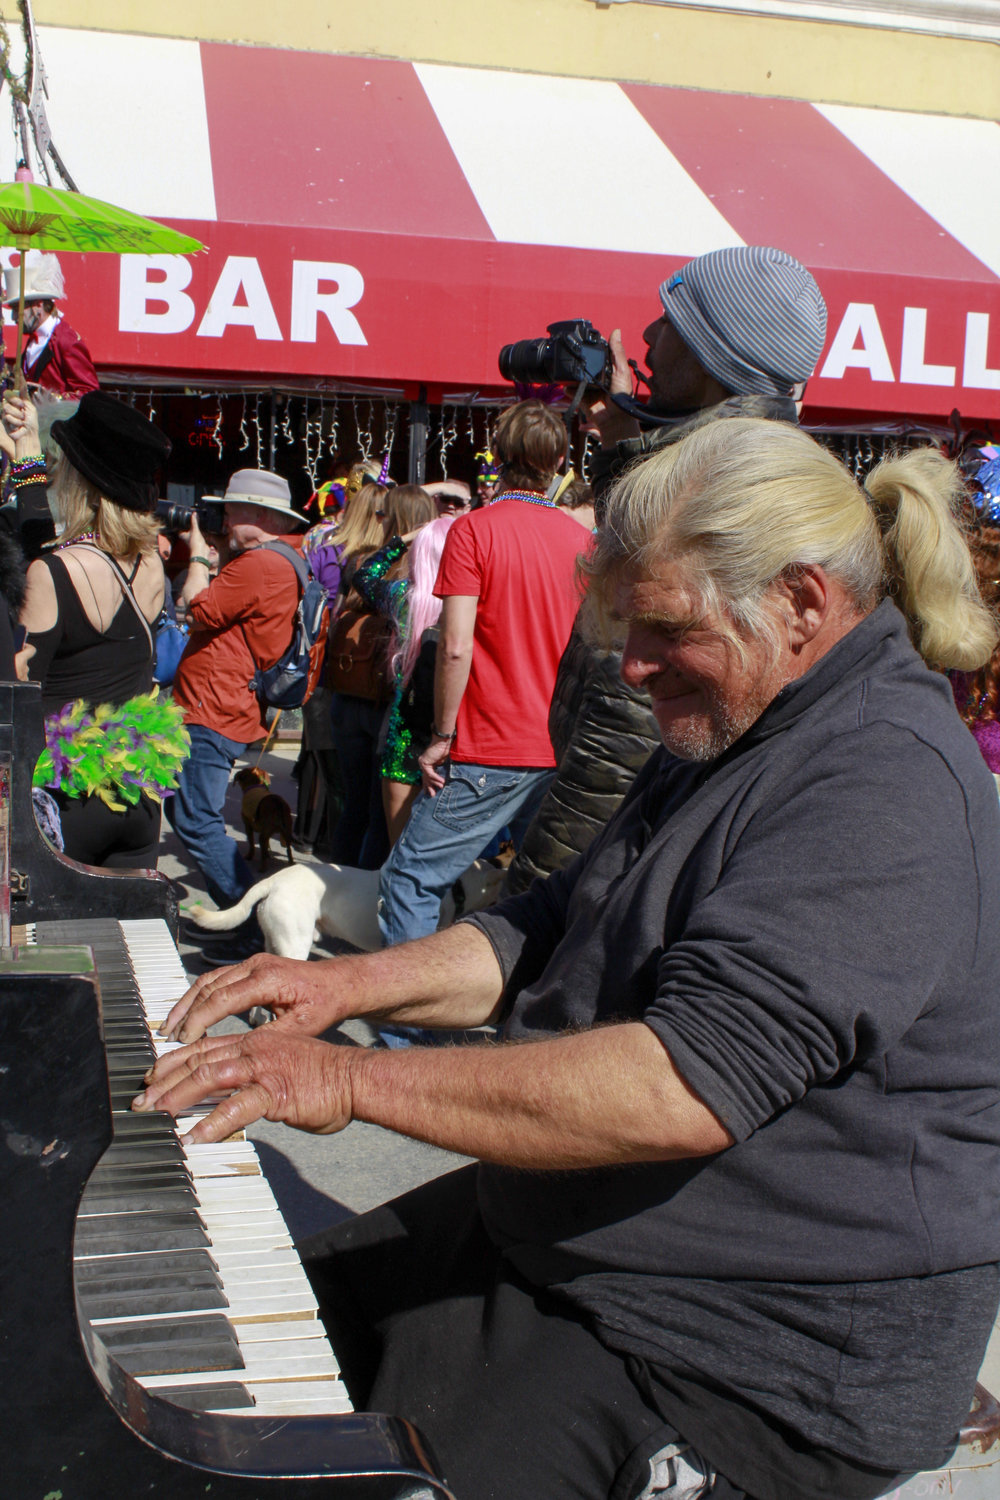 """Nathan Pino plays his piano on the Venice Beach boardwalk as the Venice Beach Mardi Gras parade floods past him on Feb 23, 2019 in Los Angeles, California. Nathan plays his Piano on the boardwalk every day, and the influx of people and instruments to play along to seemed to brighten his day. """"It's a nice birthday present,"""" Says Nathan. Photo by Danica Creahan."""